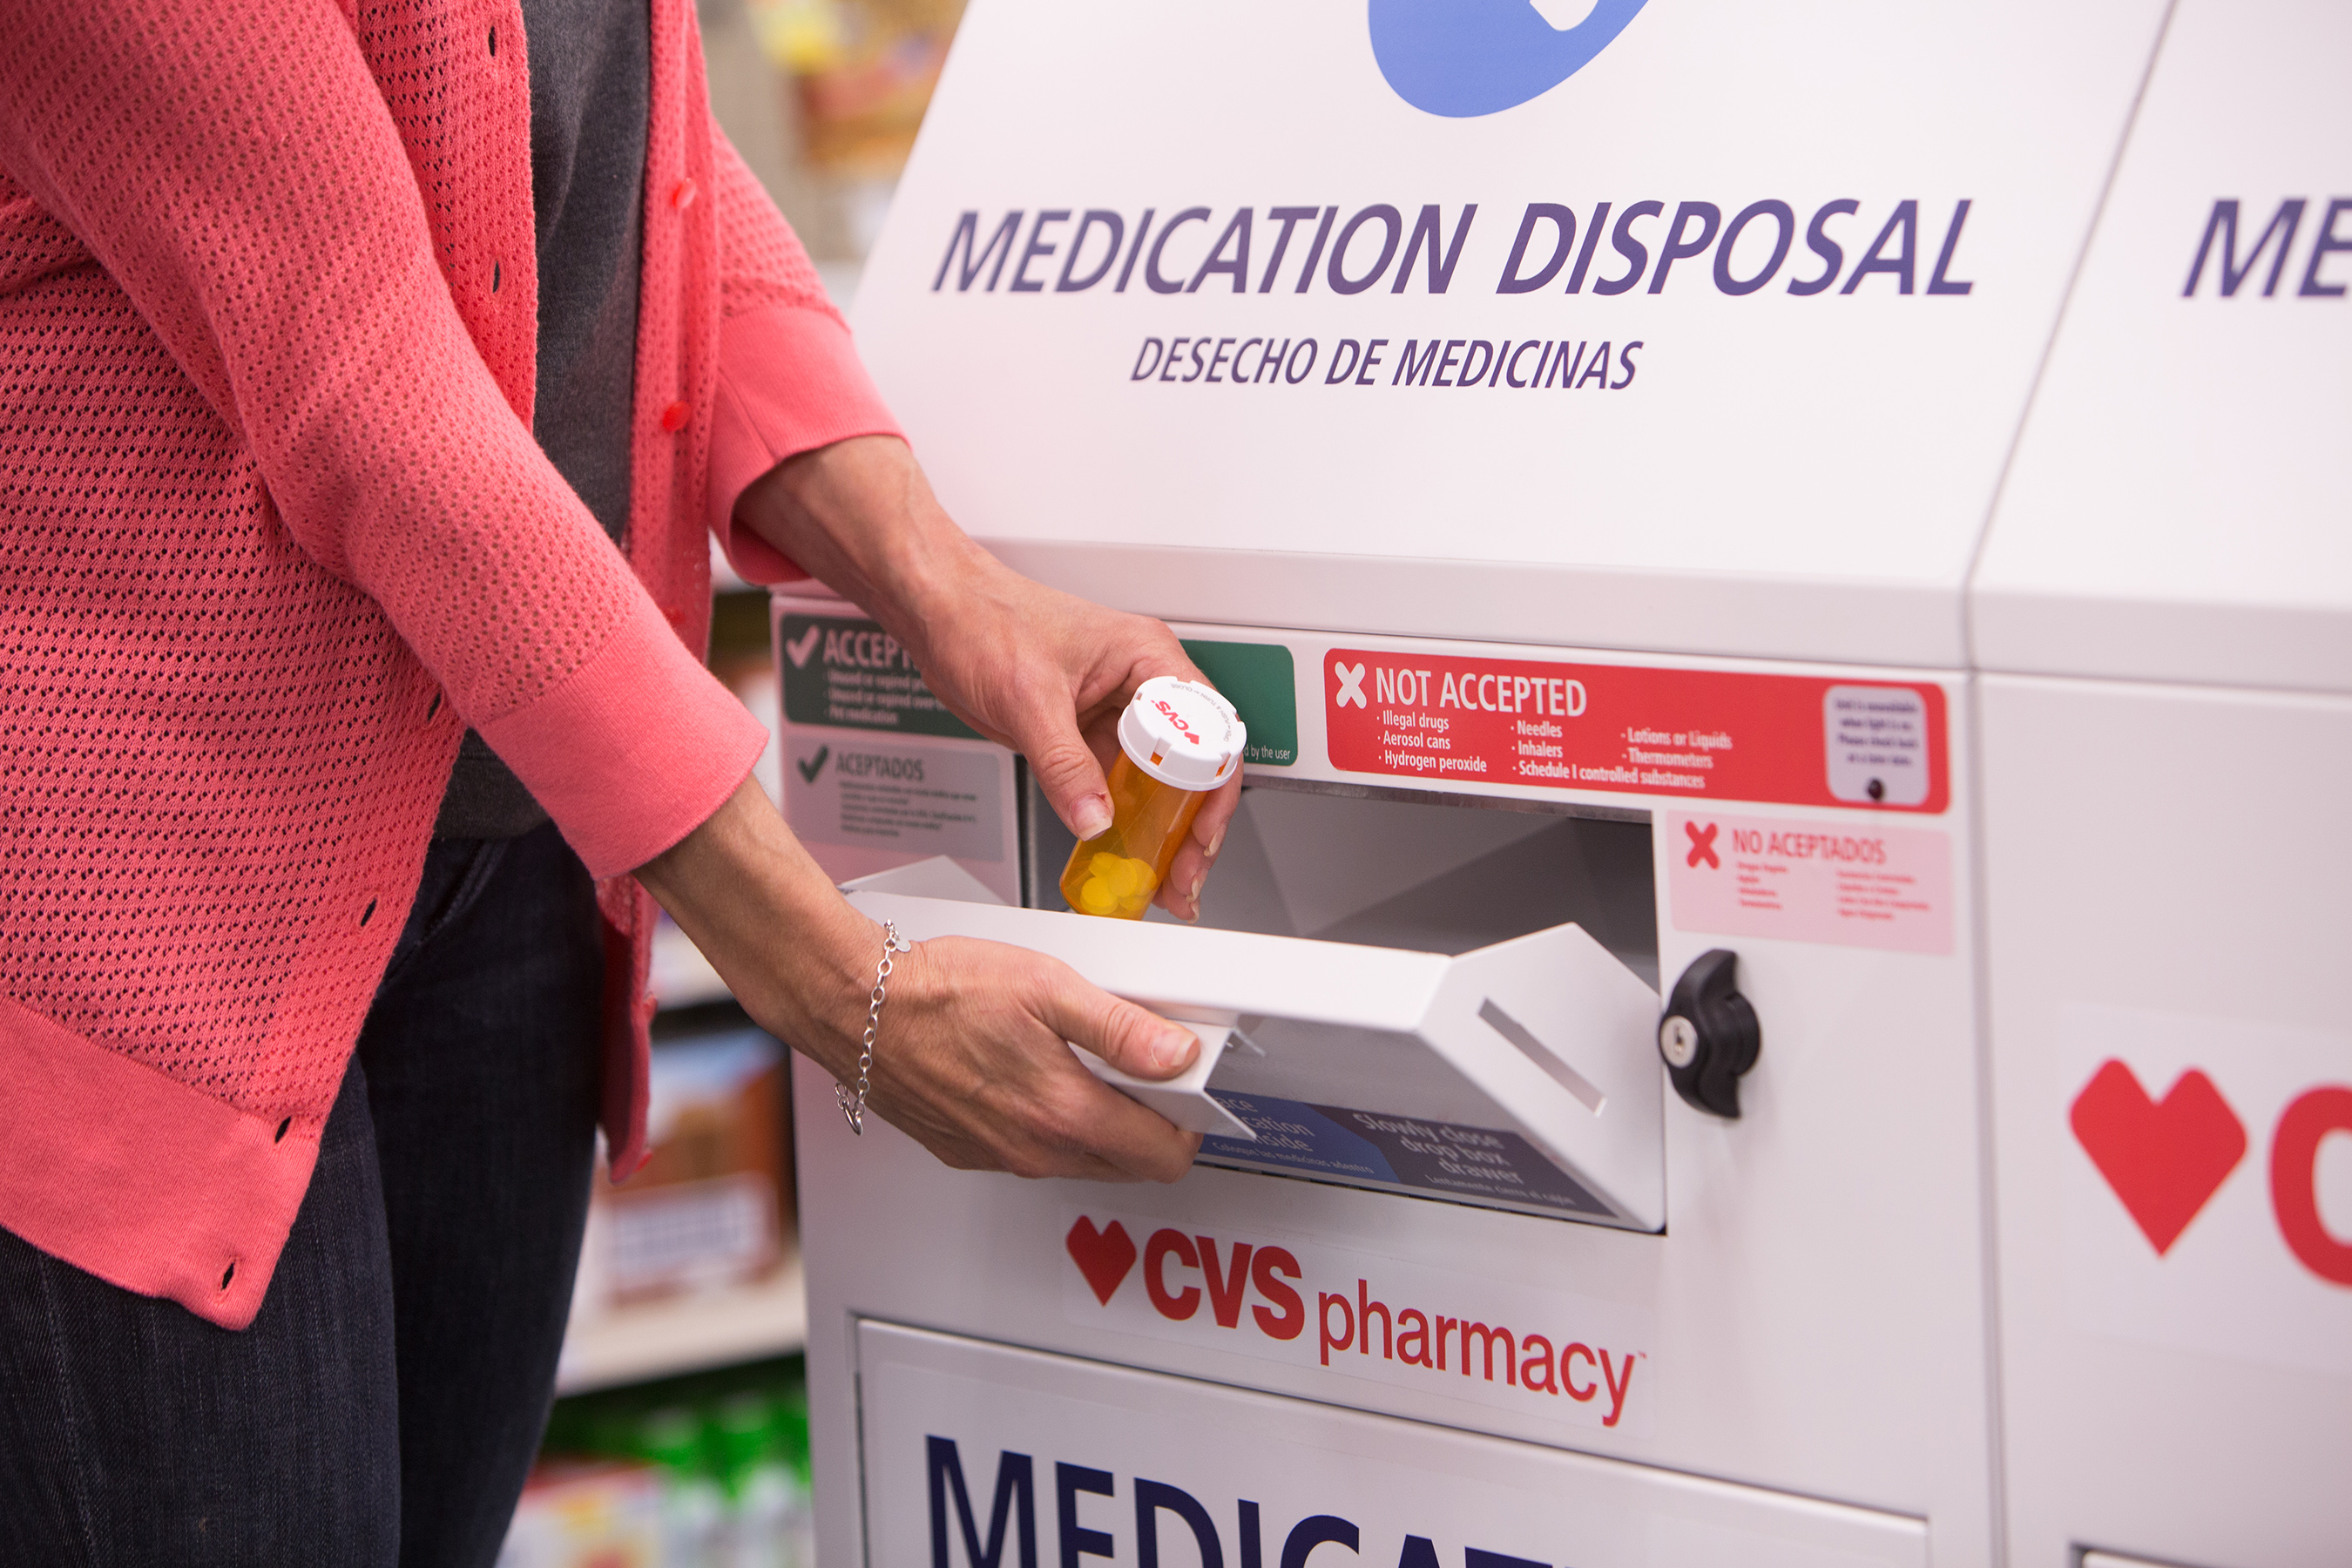 Zoom of female patient dropping of medication at CVS Pharmacy disposal unit